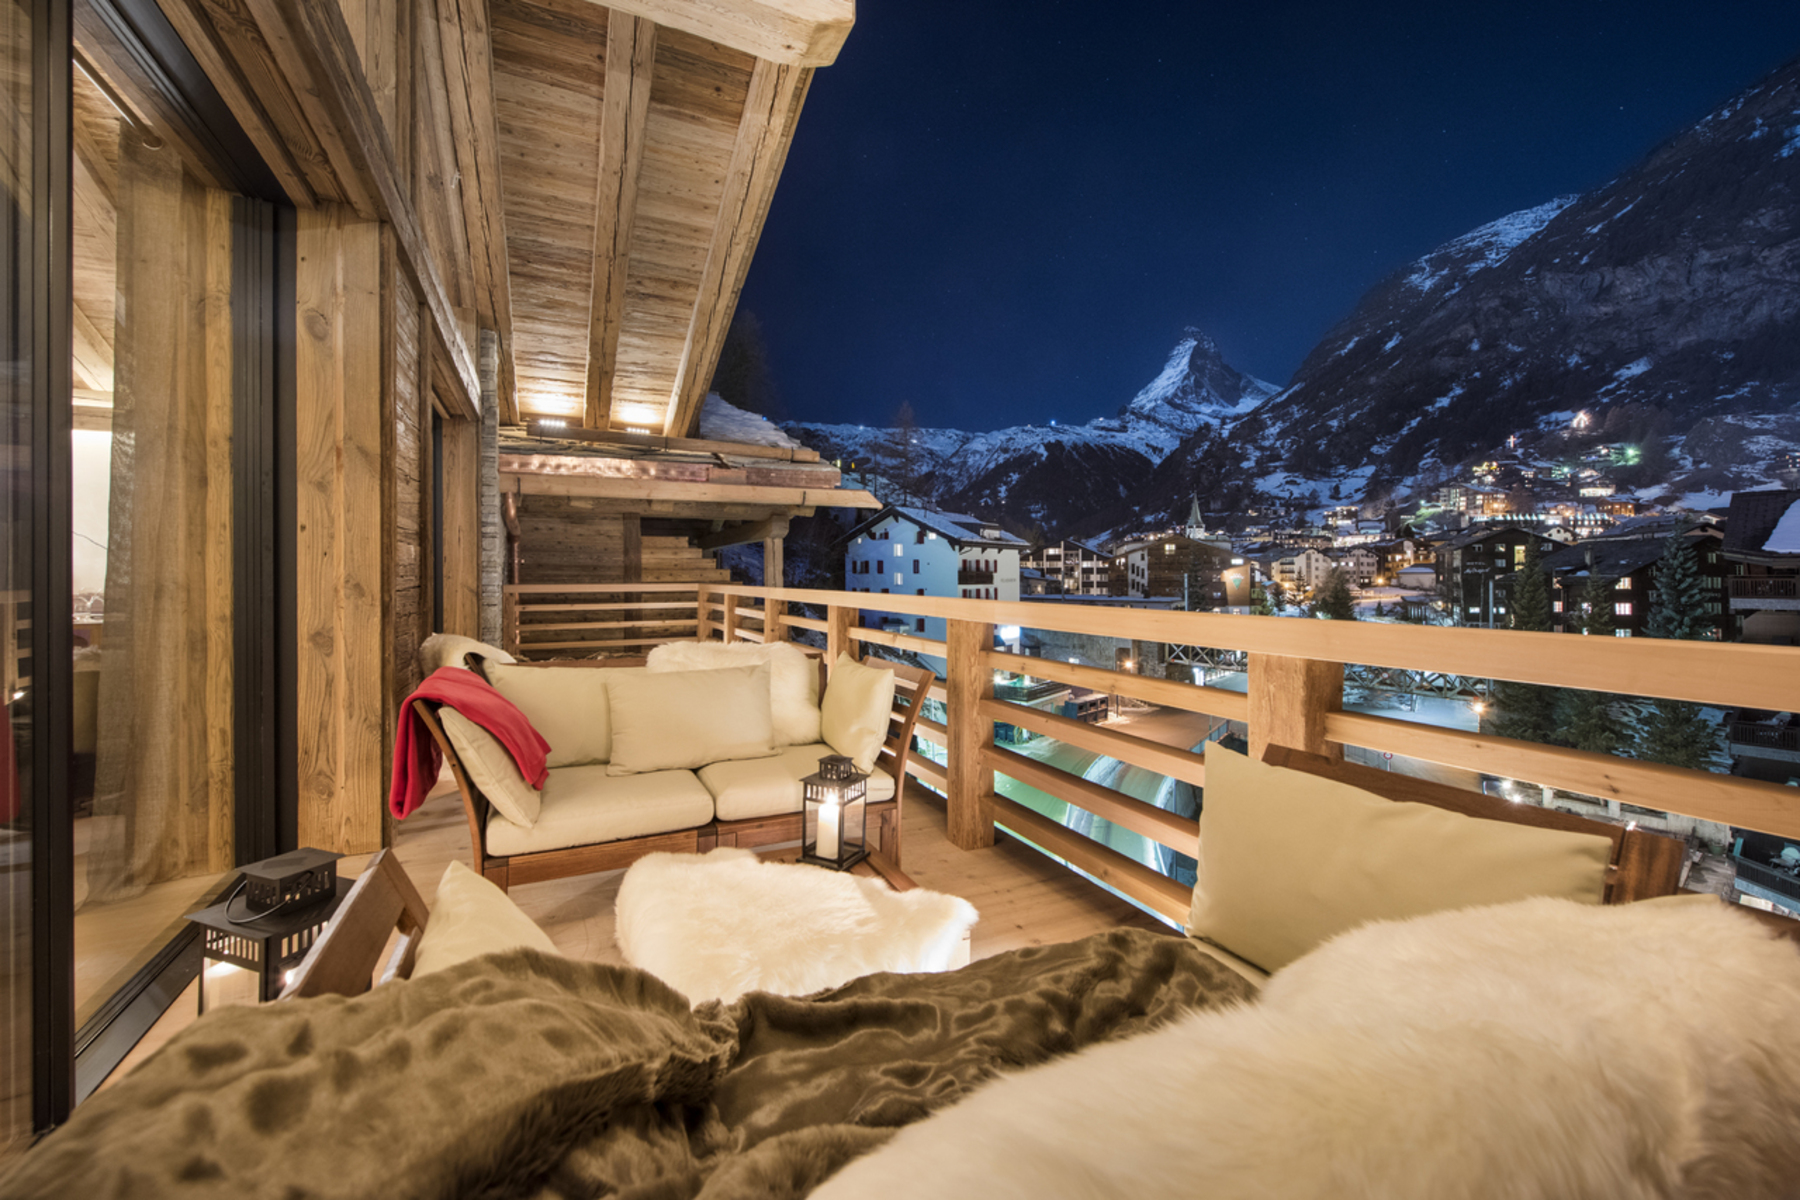 Single Family Home for Sale at Top notch chalet in central location with private wellness Zermatt, Valais, 3920 Switzerland